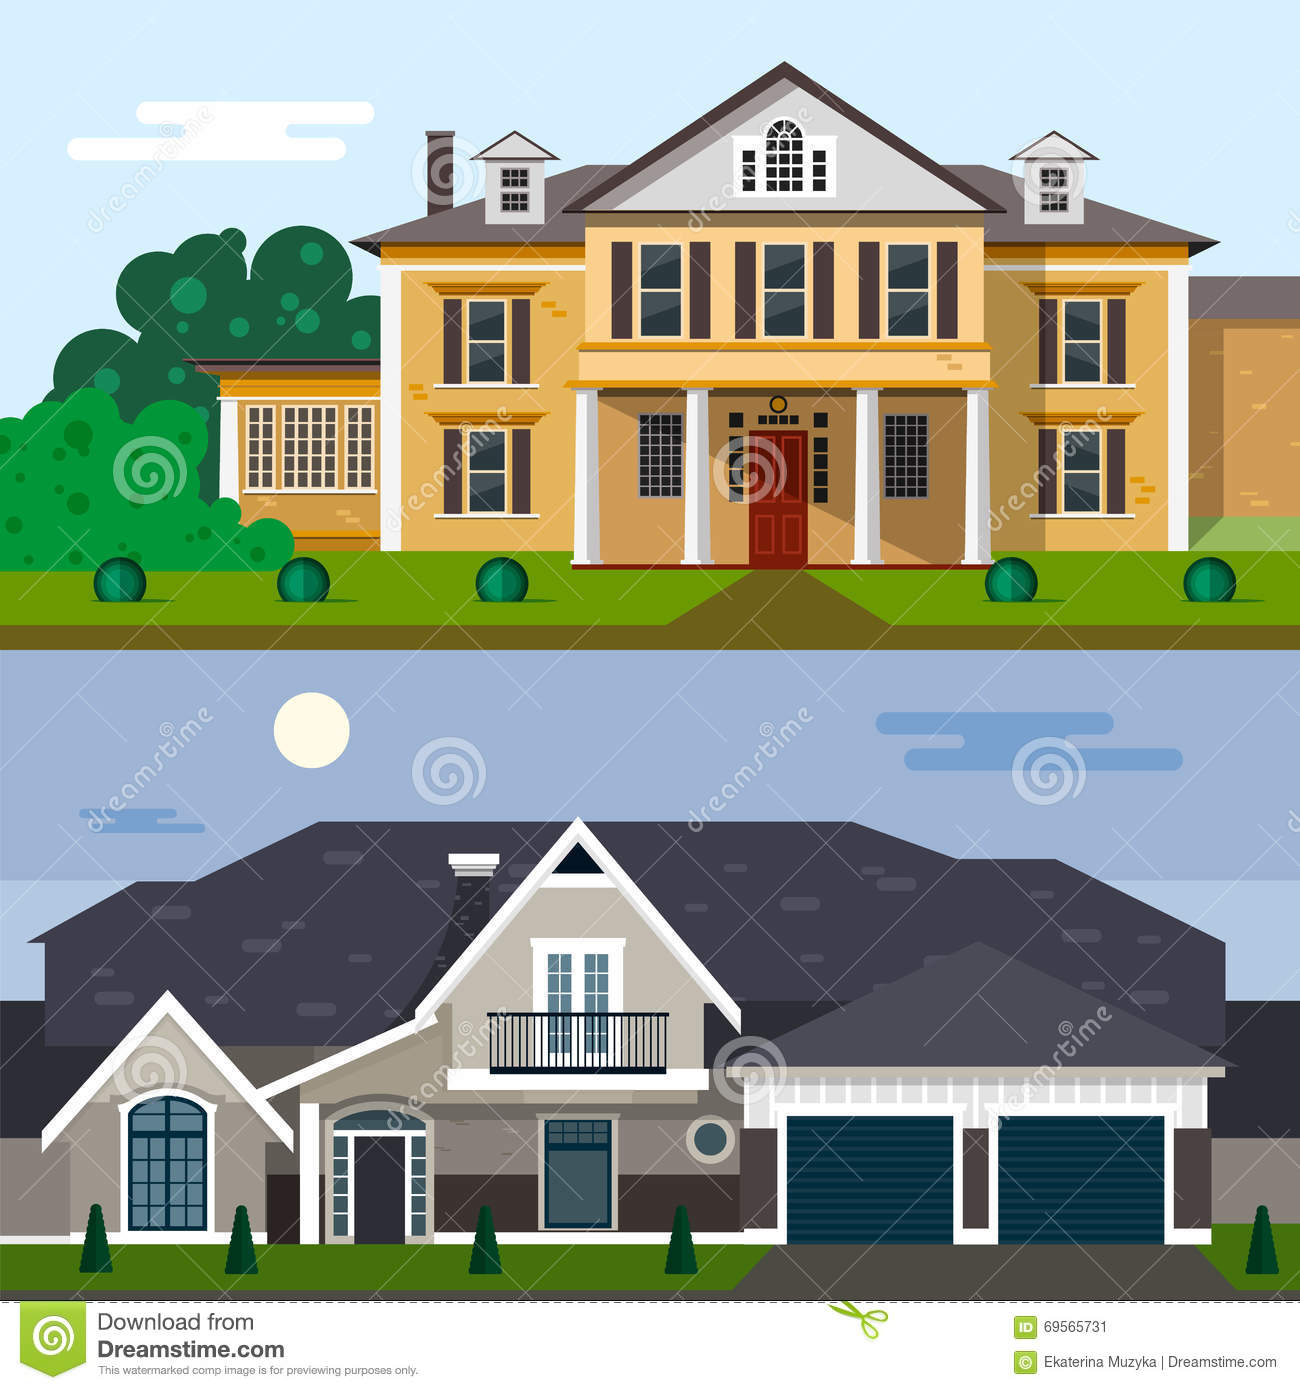 Luxury house exterior vector illustration in flat style for Flat house exterior design